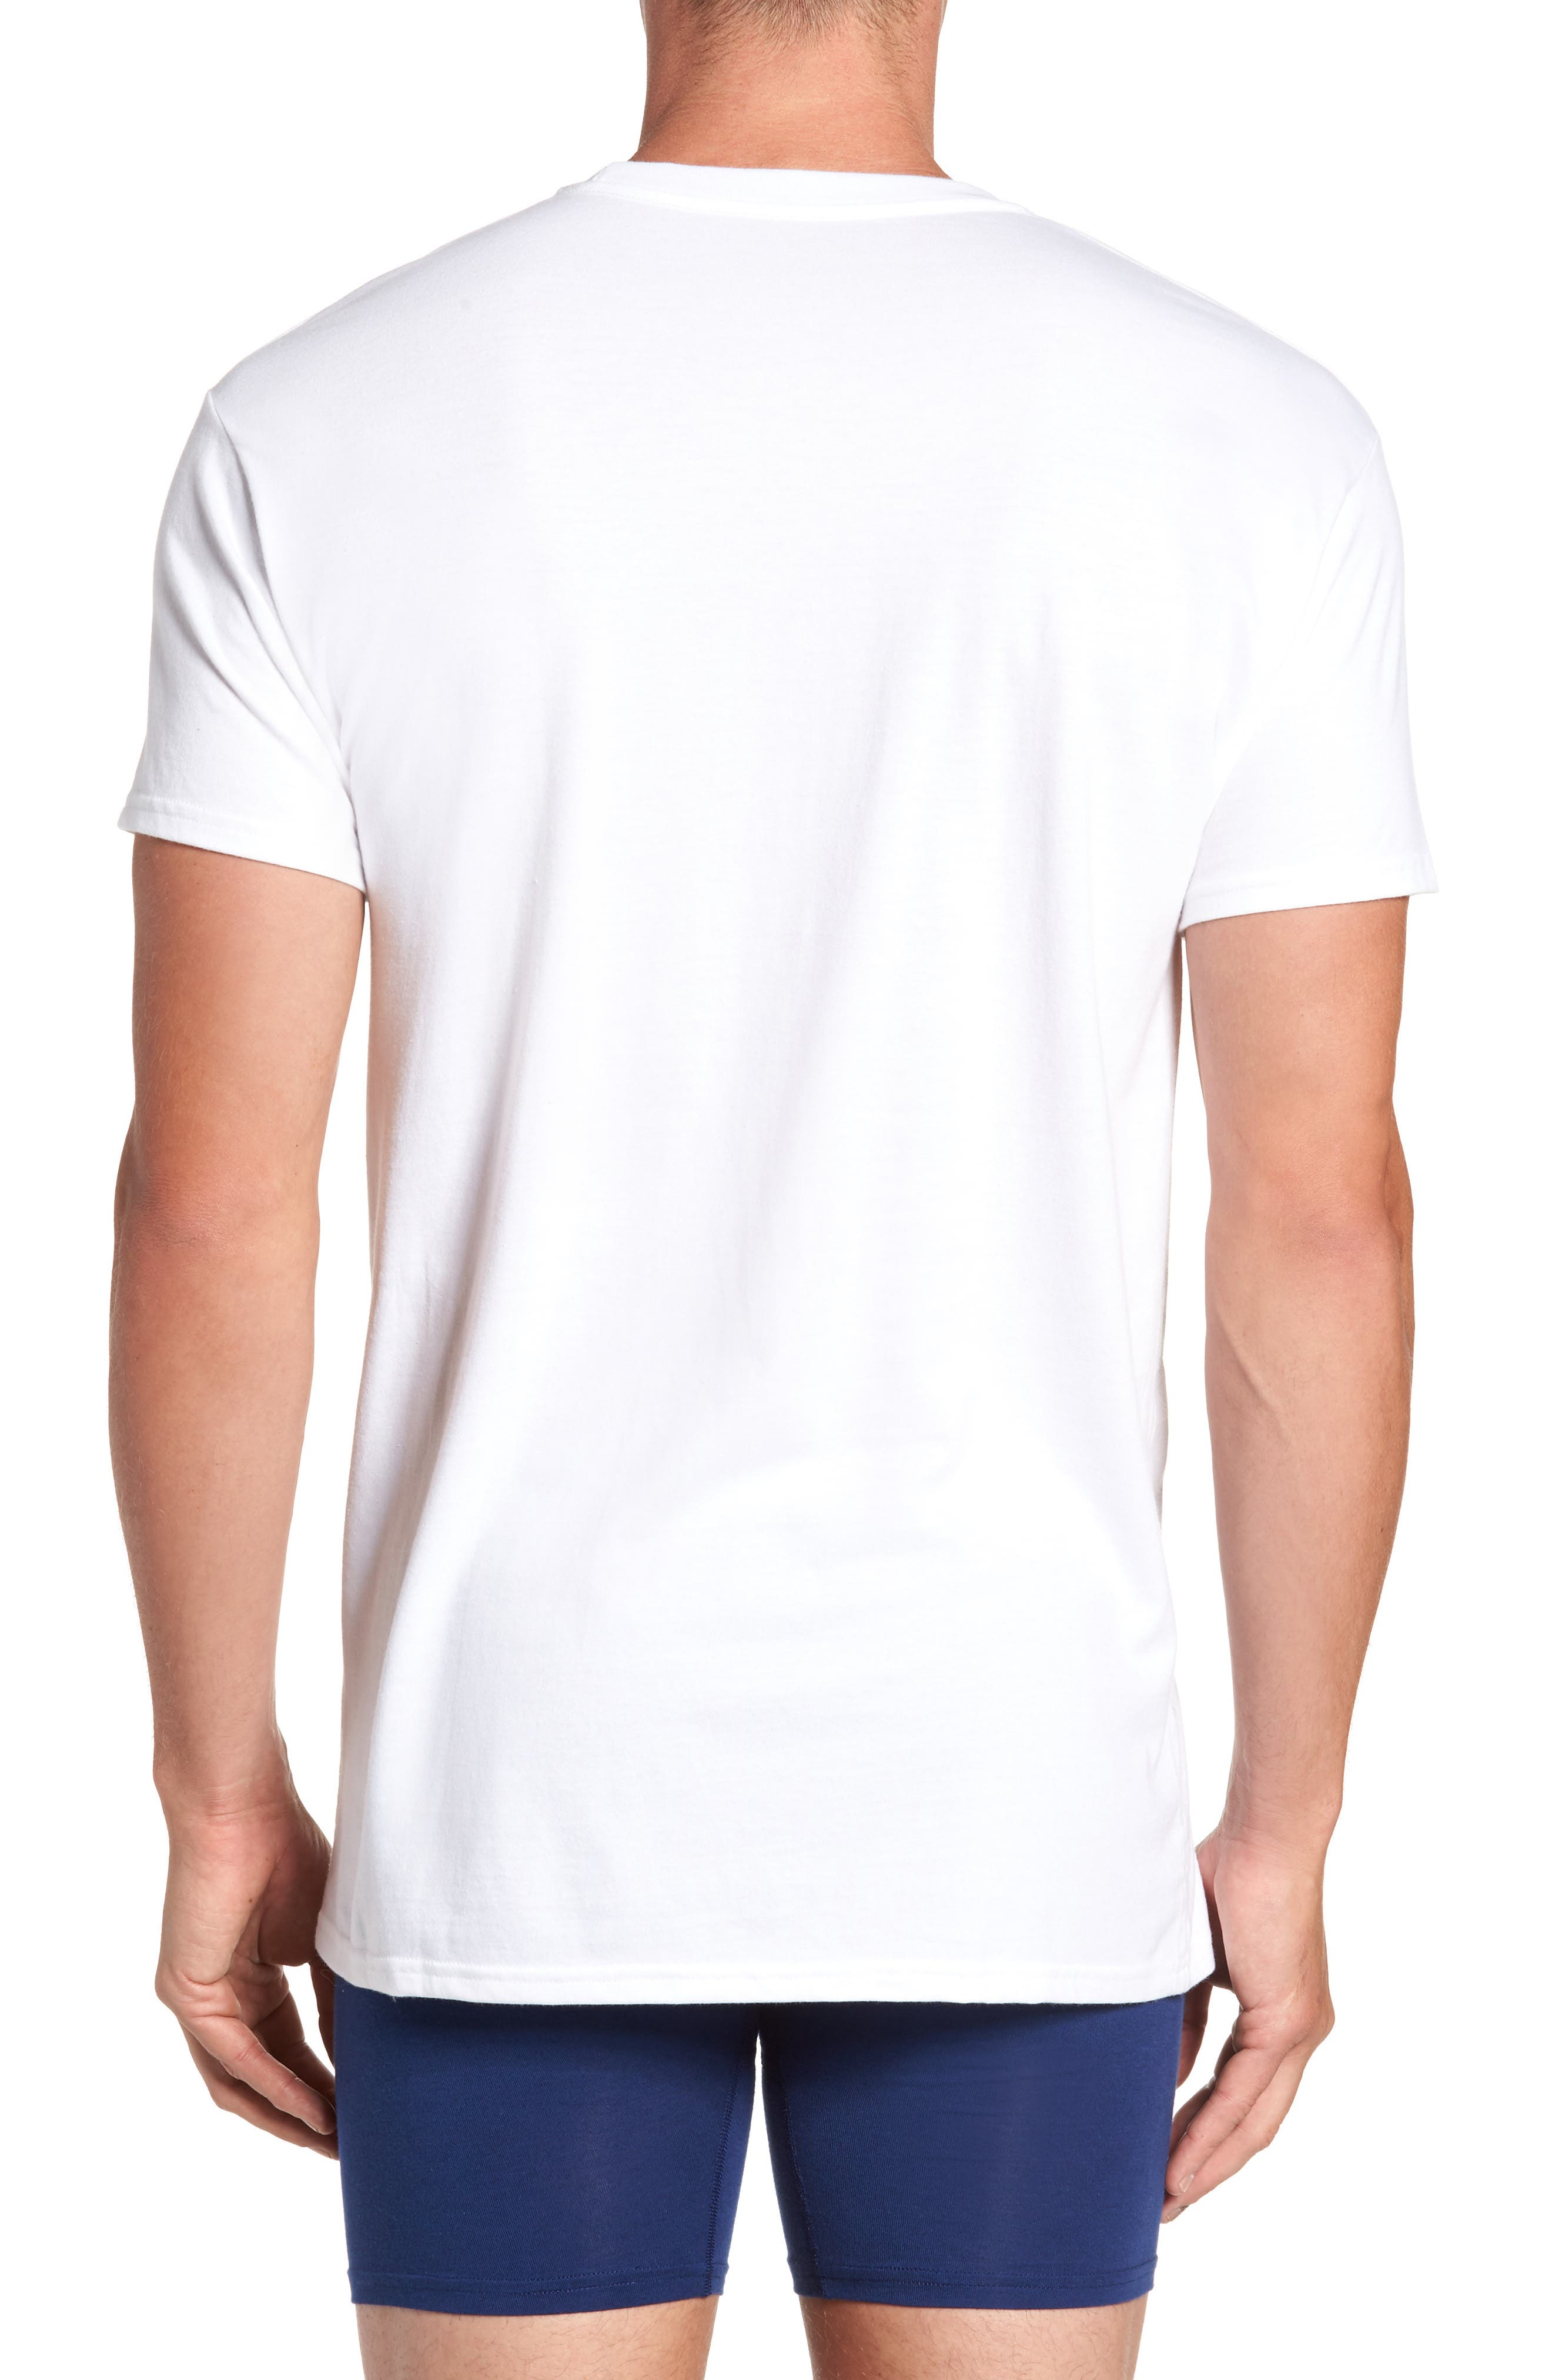 Alternate Image 3  - Hanes Luxury Essentials 3-Pack T-Shirt